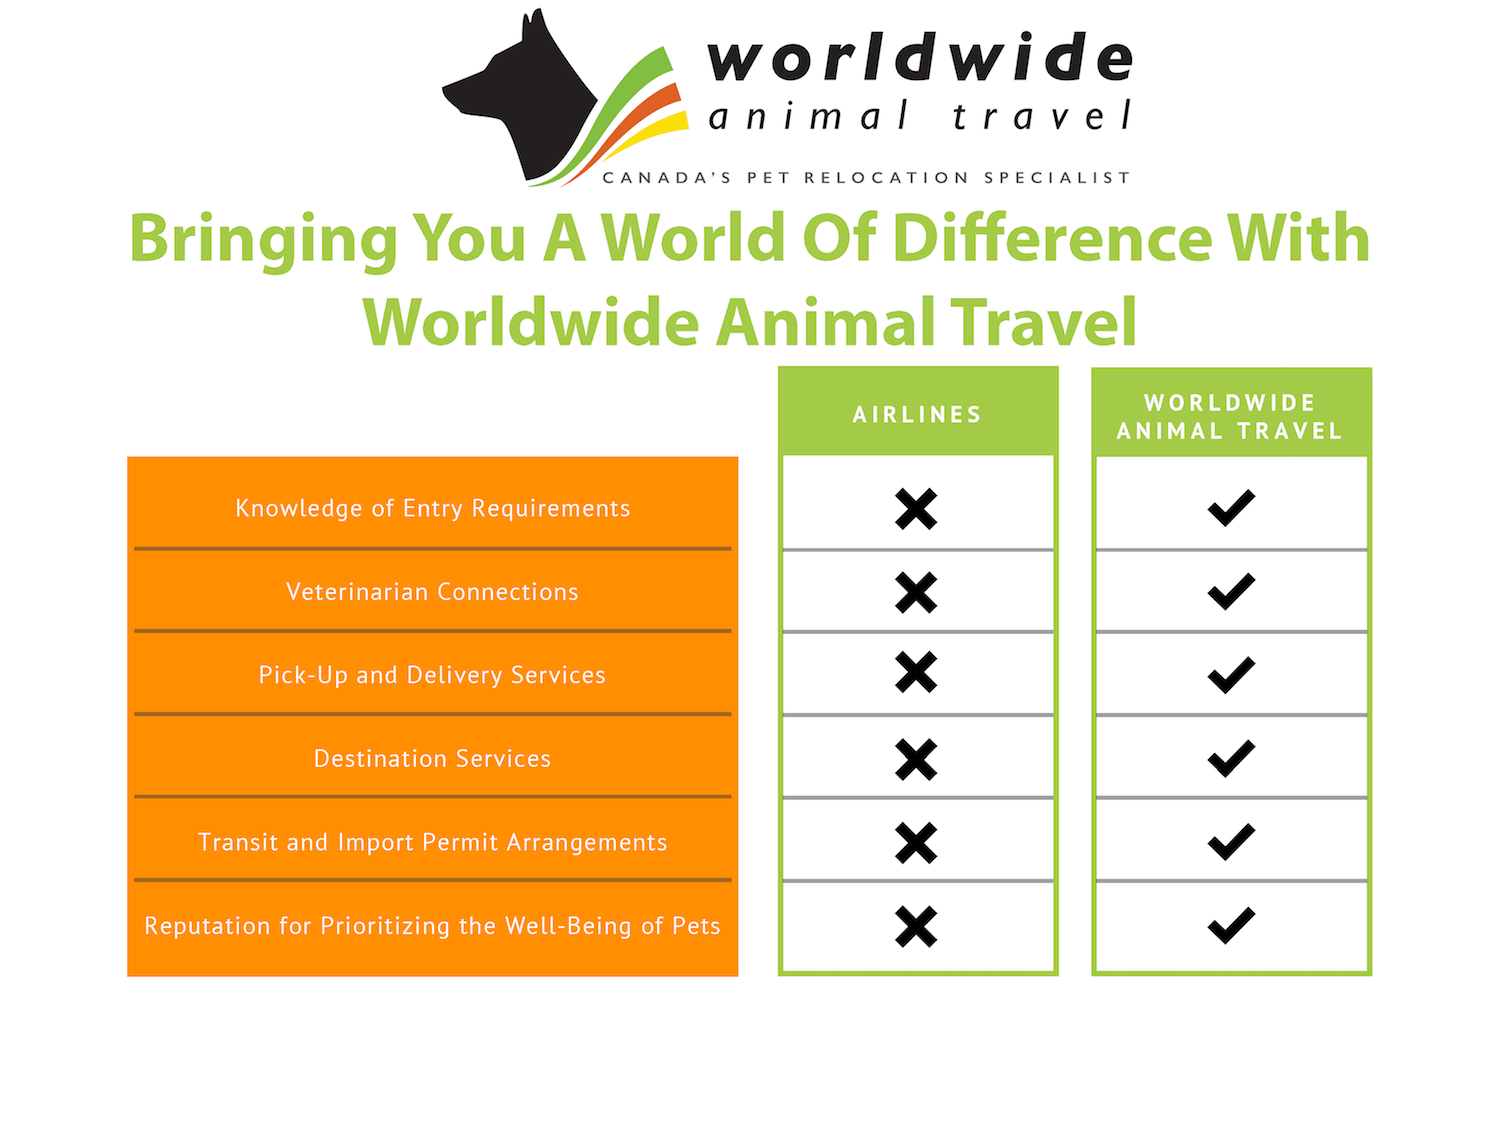 Pet Relocation Services - Worldwide Animal Travel